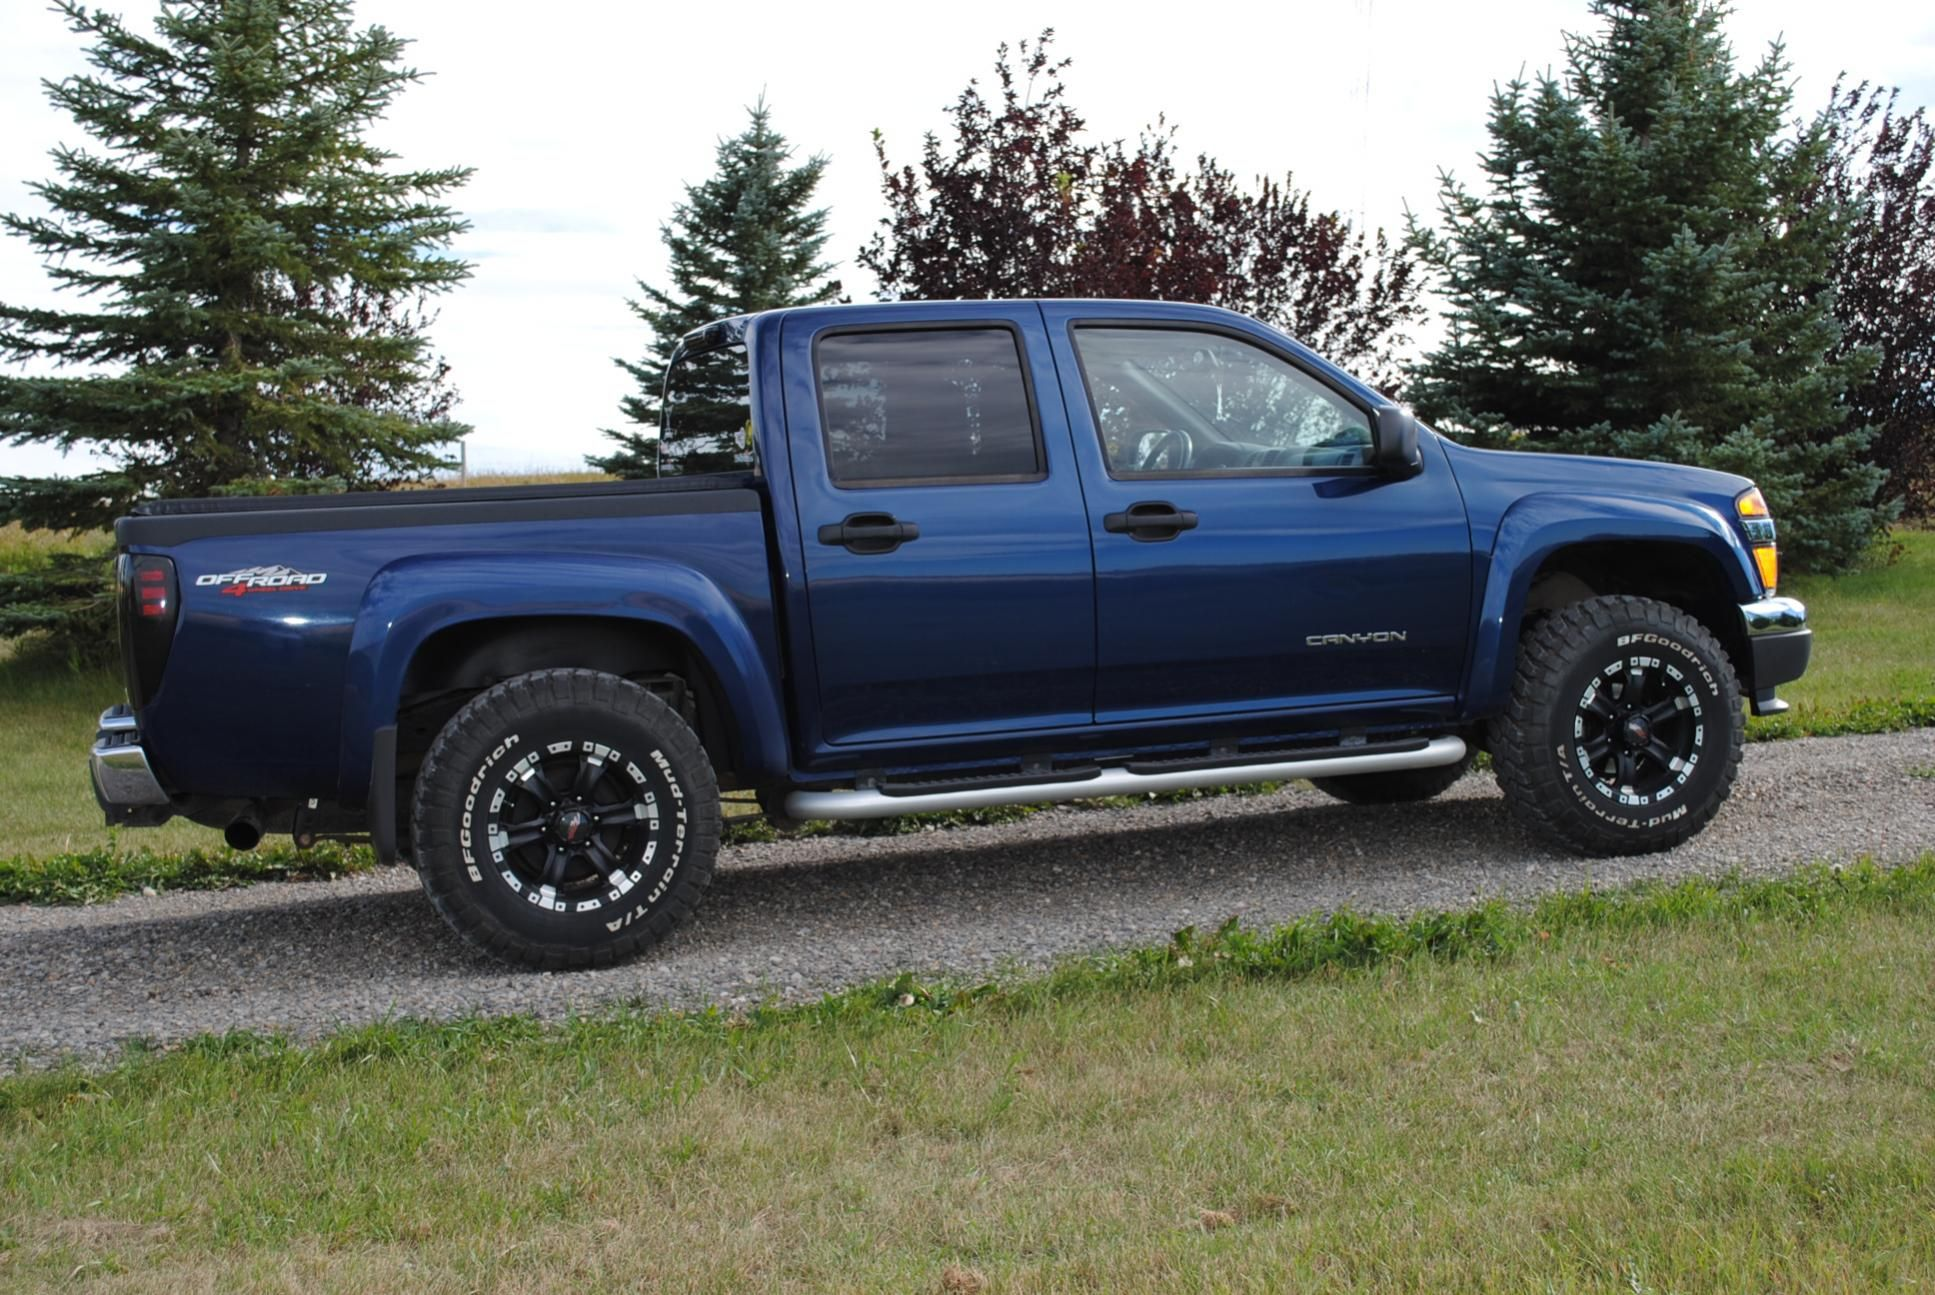 Chevy Colorado Crew Cab 4x4 Lifted Google Search With Images